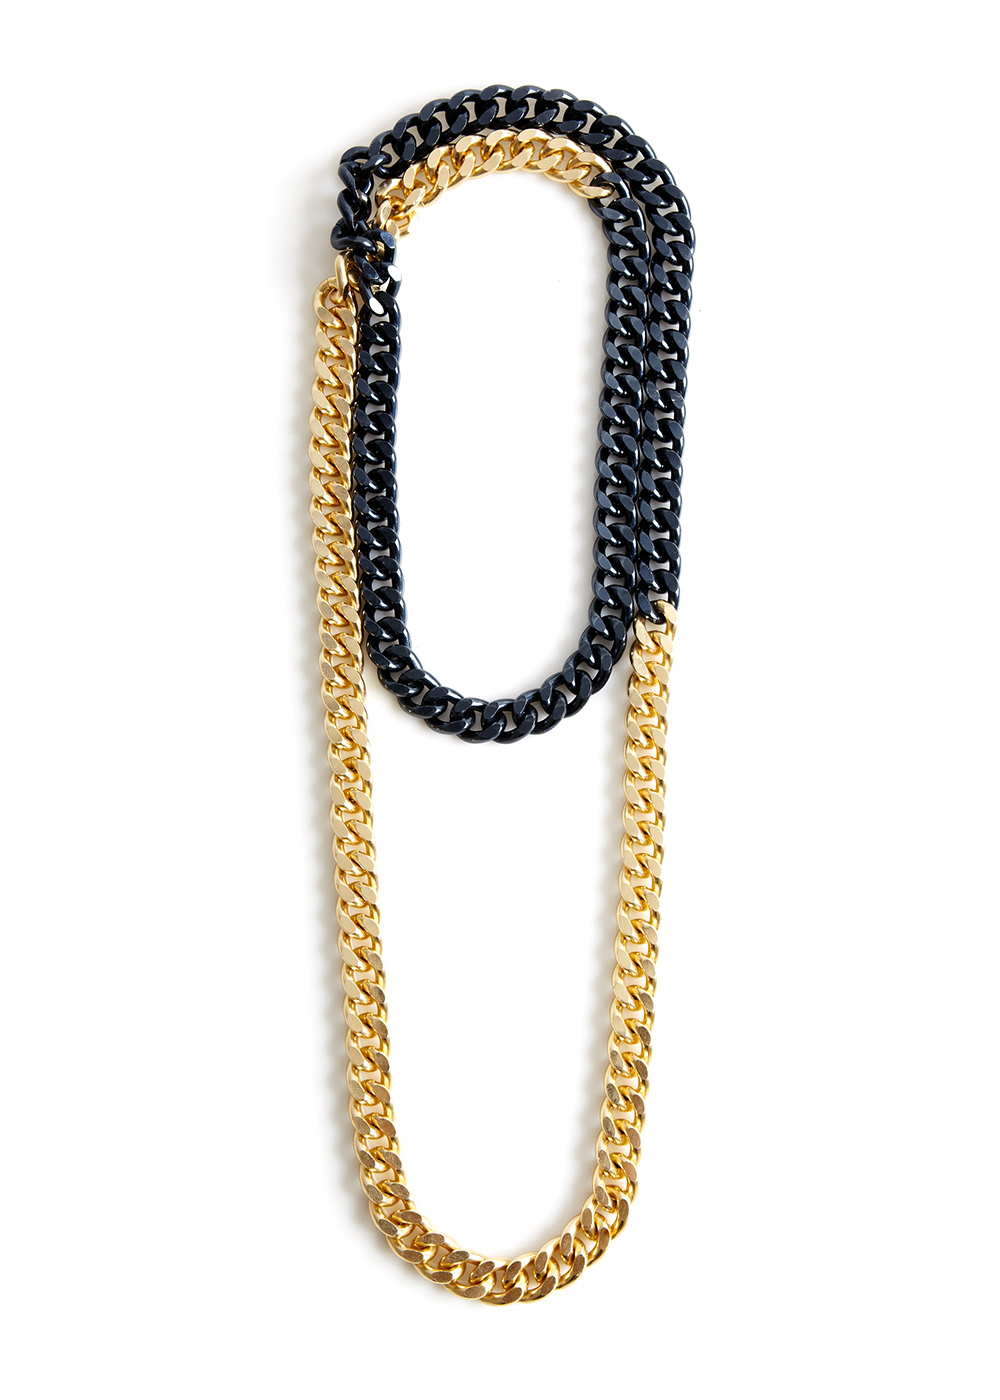 shizo-chain, anthracite / gold